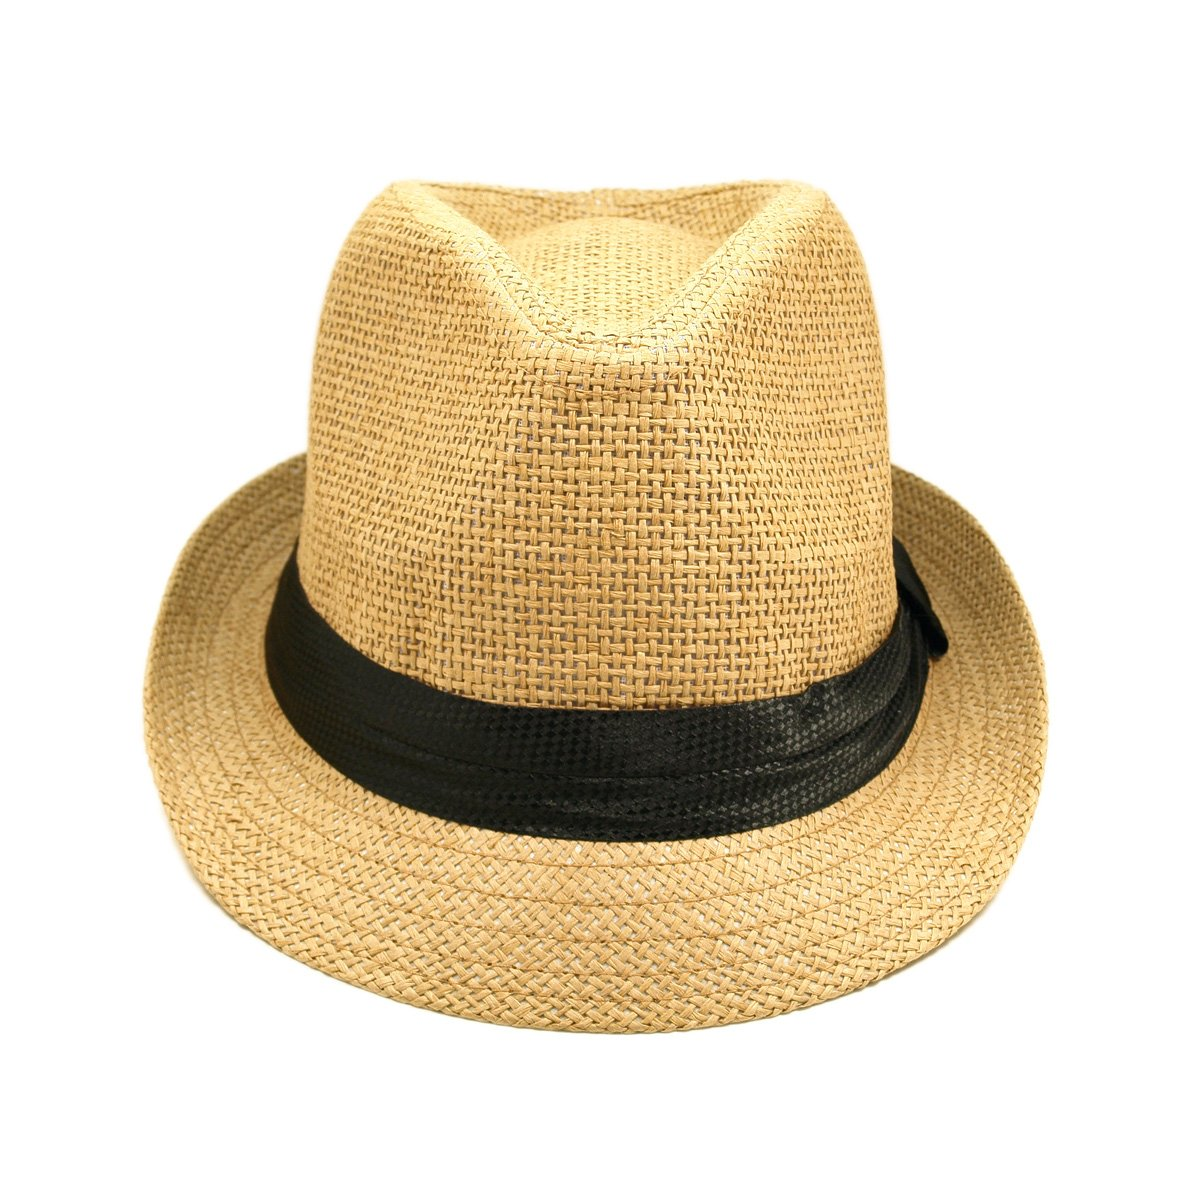 Classic Tan Fedora Straw Hat with Black Band at Amazon Women s Clothing  store  Straw Fedora Hats For Women df4bec567ce